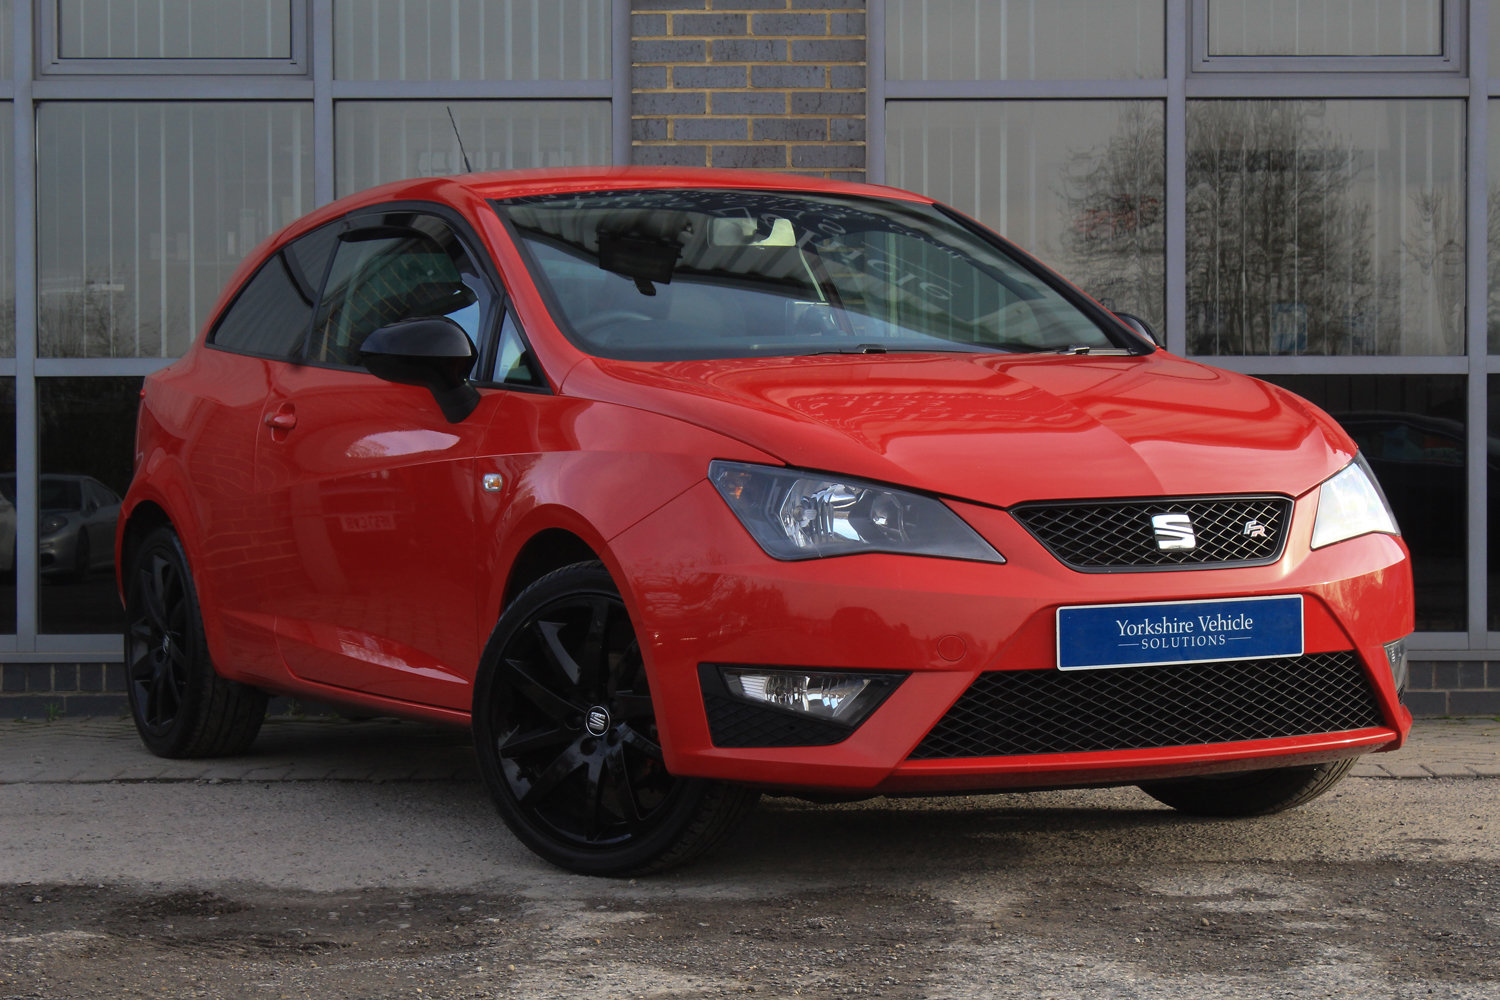 2015 15 SEAT IBIZA 1.2 TSI FR BLACK  For Sale (picture 1 of 6)